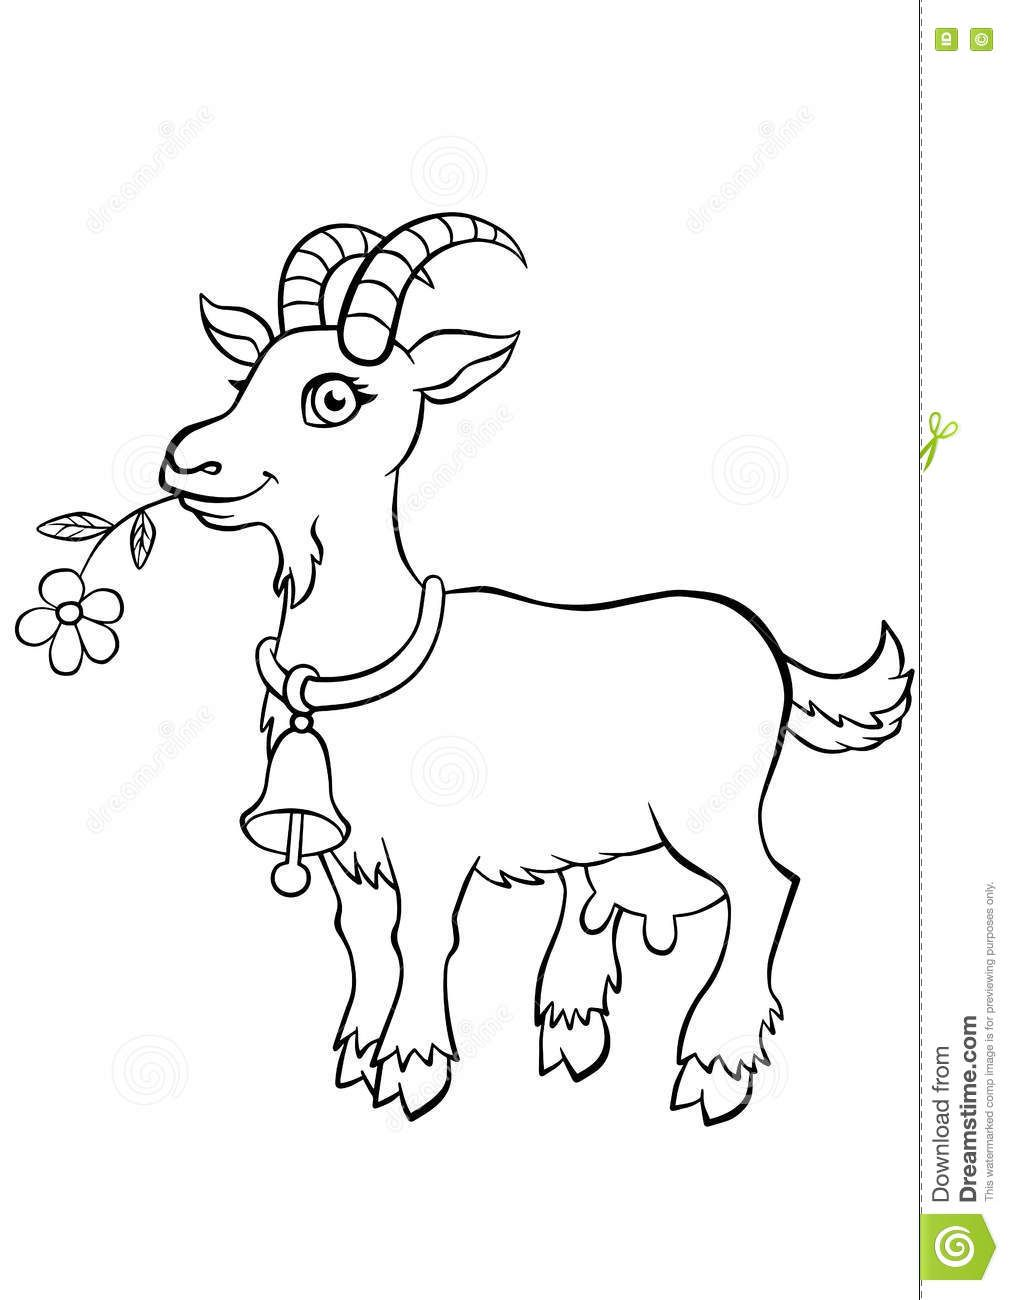 Illustration About Coloring Pages Animals Little Cute Goat Stands And Holds A Flower Goat Coloring Pages Farm Animal Coloring Pages Zoo Animal Coloring Pages